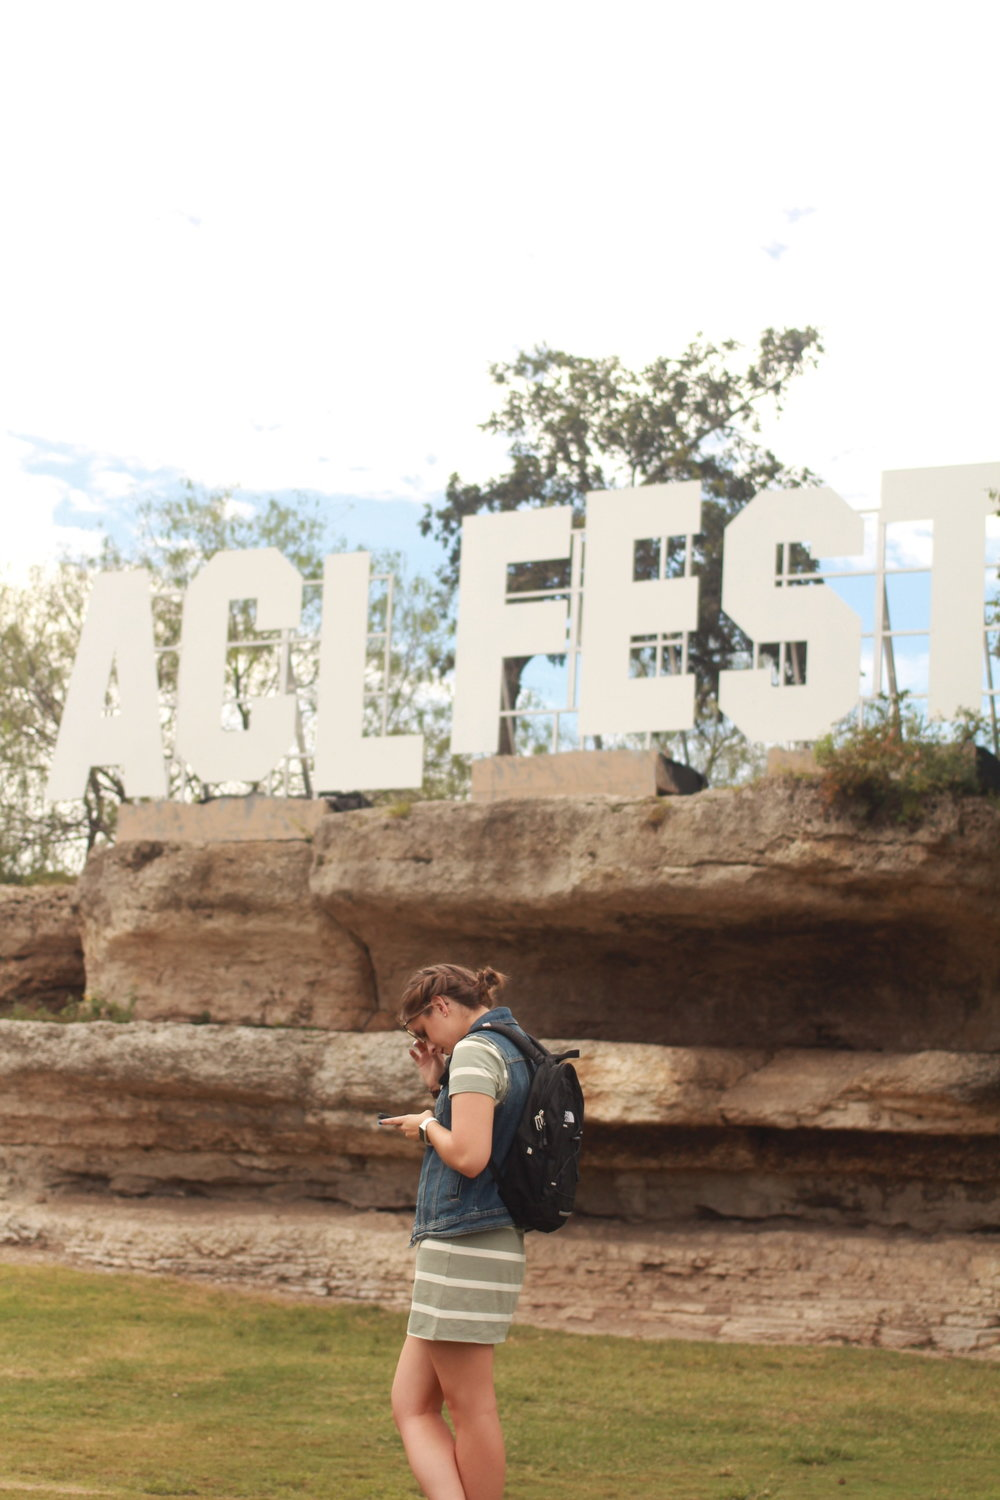 Many pose in front of the ACL Fest sign.